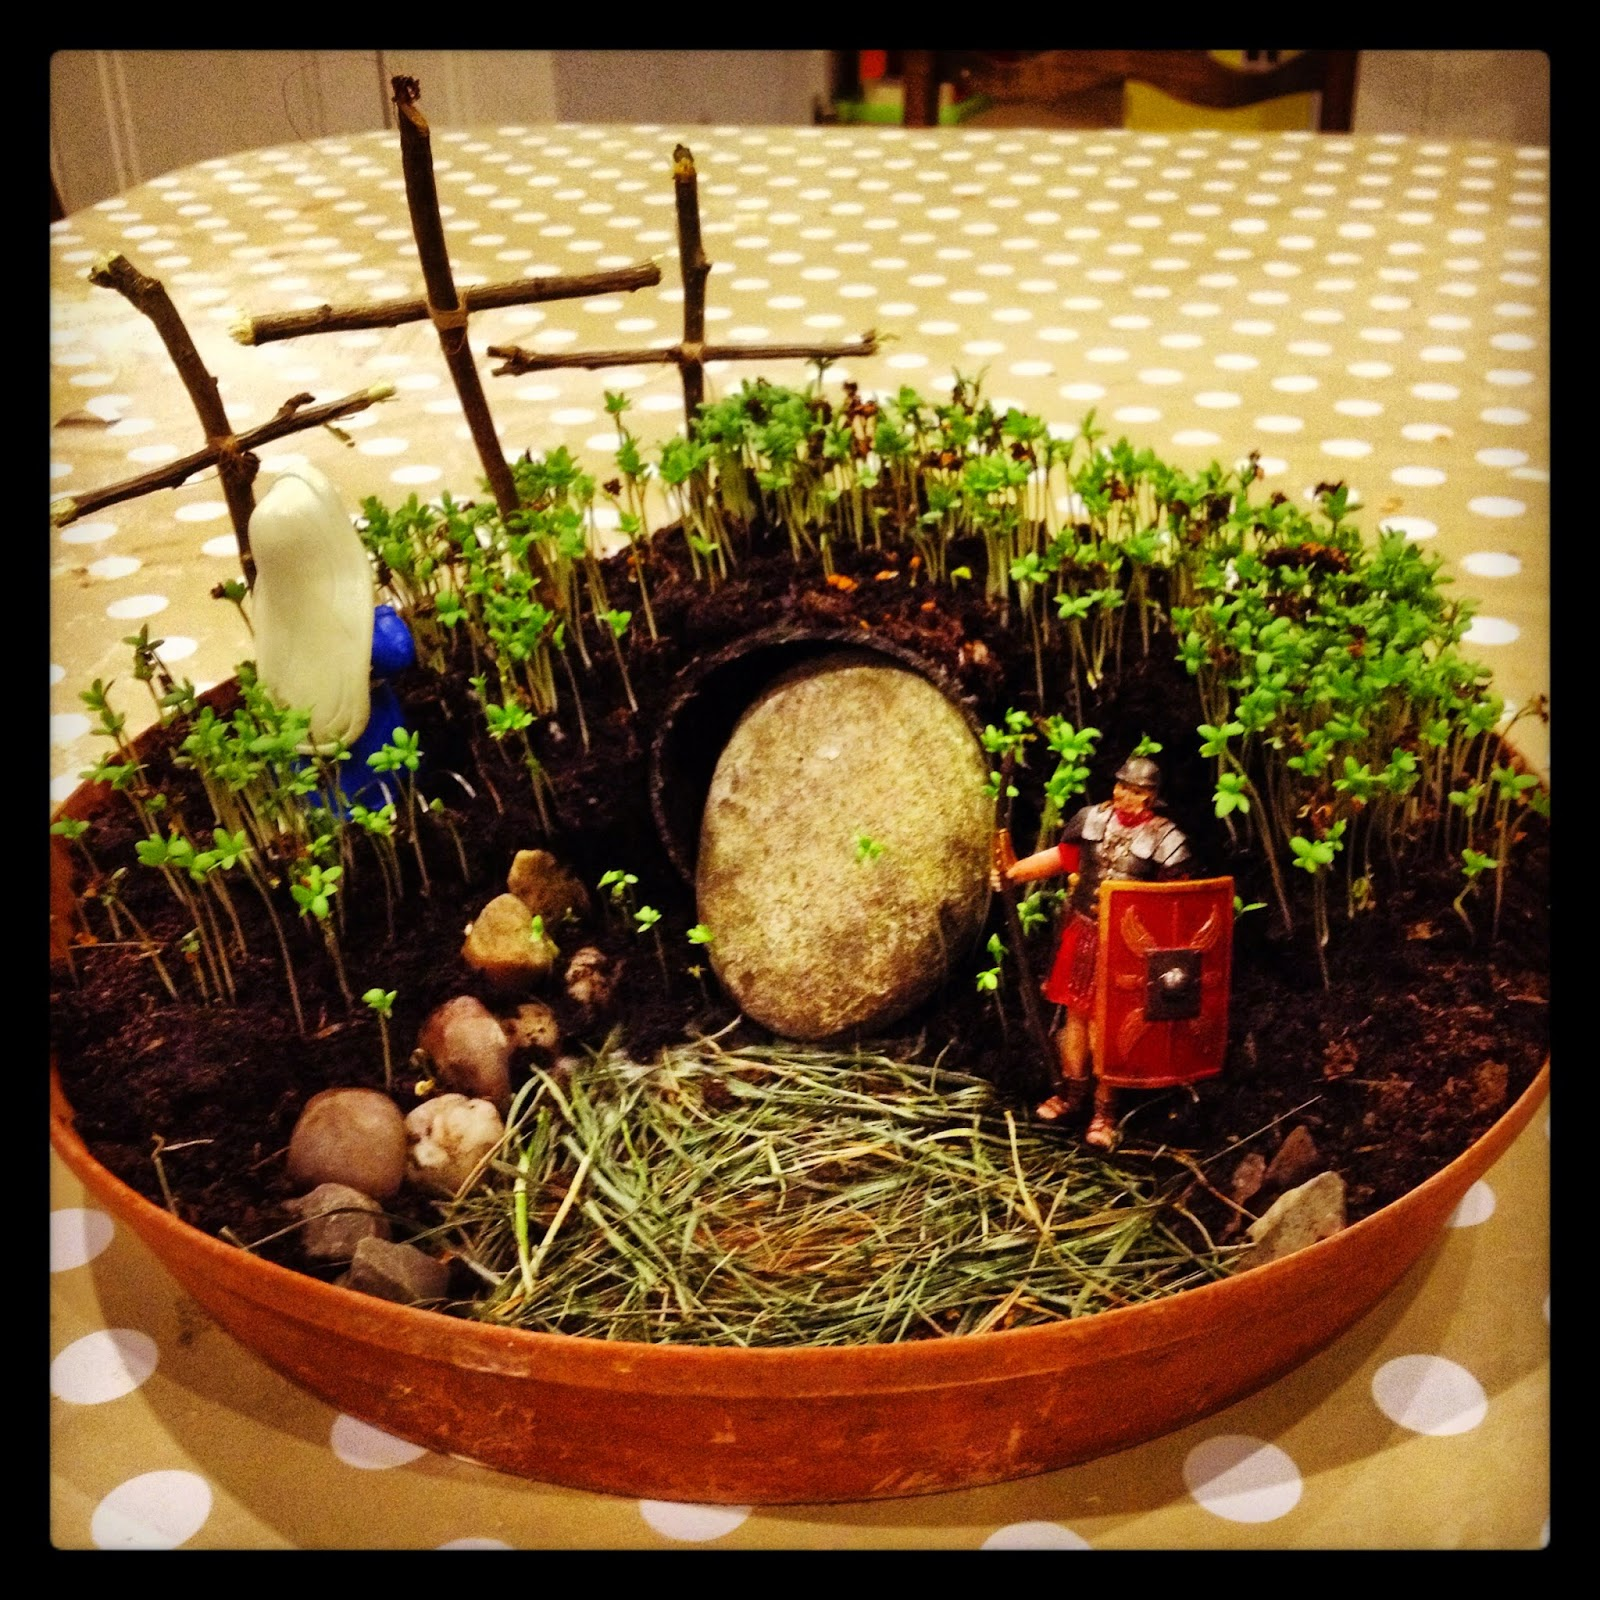 Scenic Culture Baby Ten Great Easter Activities For Tots With Engaging In The Same Post I Also Talked About How Much We Enjoyed Creating Our Own  Resurrection Garden For Holy Week Complete With Live Cress As Grass And  Model  With Lovely Garden Mirrors With Shutters Also Ladies Gardening Trousers In Addition Garden Route Map And Royal Garden Ala Moana Menu As Well As Garden Candle Lanterns Additionally Garden Stepping Stones Uk From Culturebabynet With   Engaging Culture Baby Ten Great Easter Activities For Tots With Lovely In The Same Post I Also Talked About How Much We Enjoyed Creating Our Own  Resurrection Garden For Holy Week Complete With Live Cress As Grass And  Model  And Scenic Garden Mirrors With Shutters Also Ladies Gardening Trousers In Addition Garden Route Map From Culturebabynet